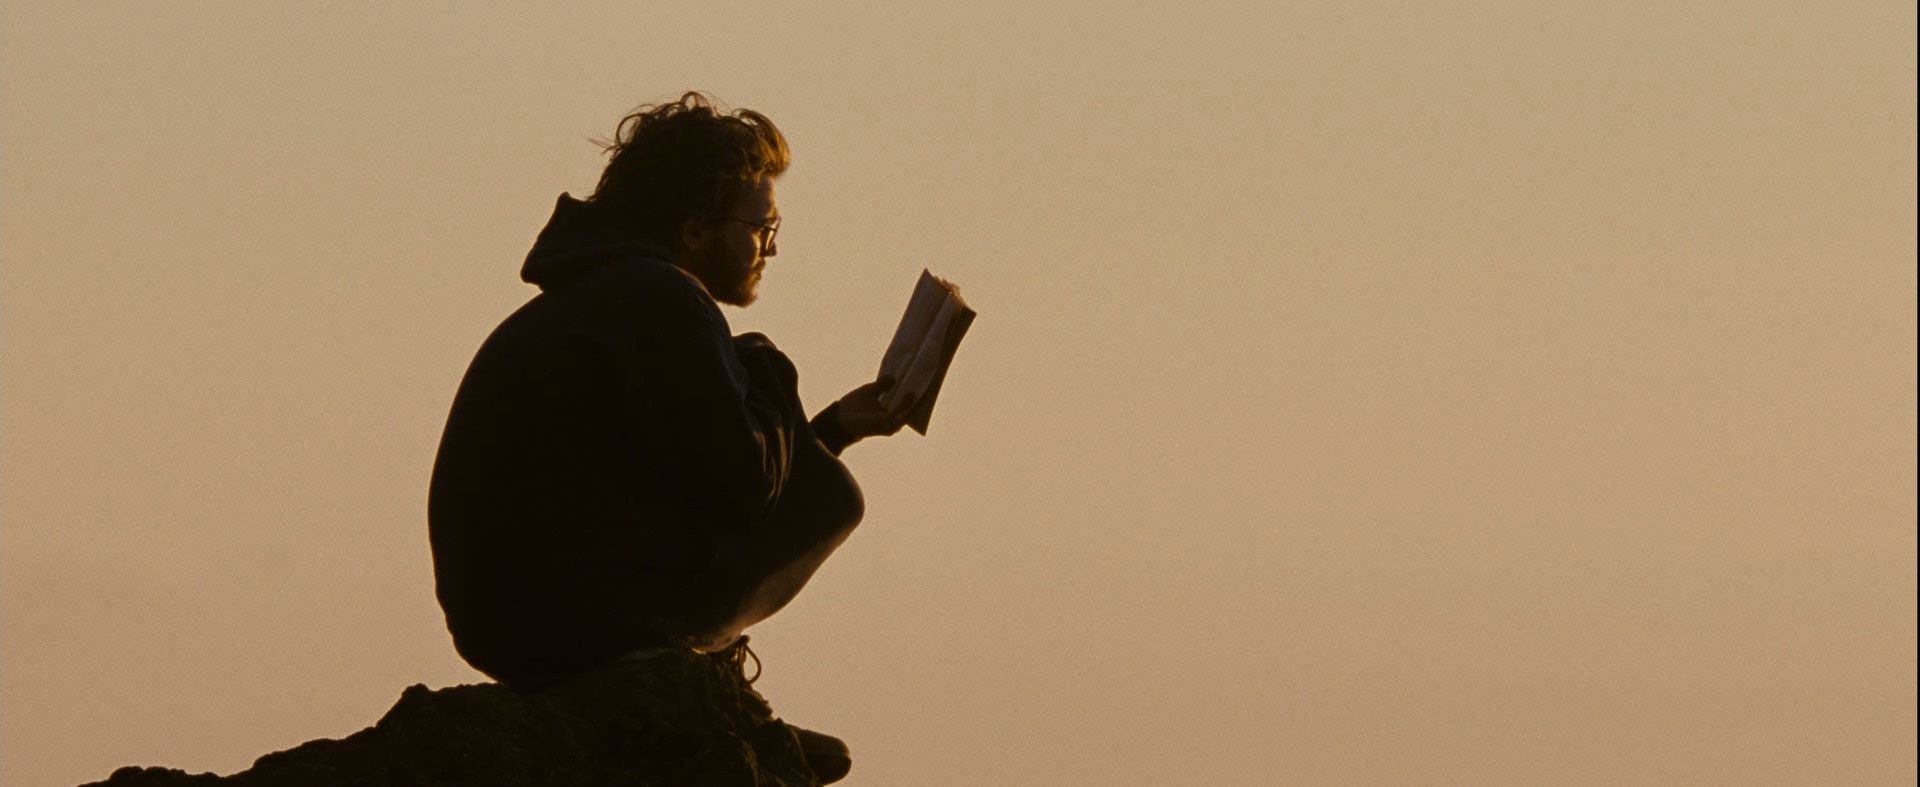 Into The Wild Quotes Happiness Only Real When Shared Some Good Books  Pinterest